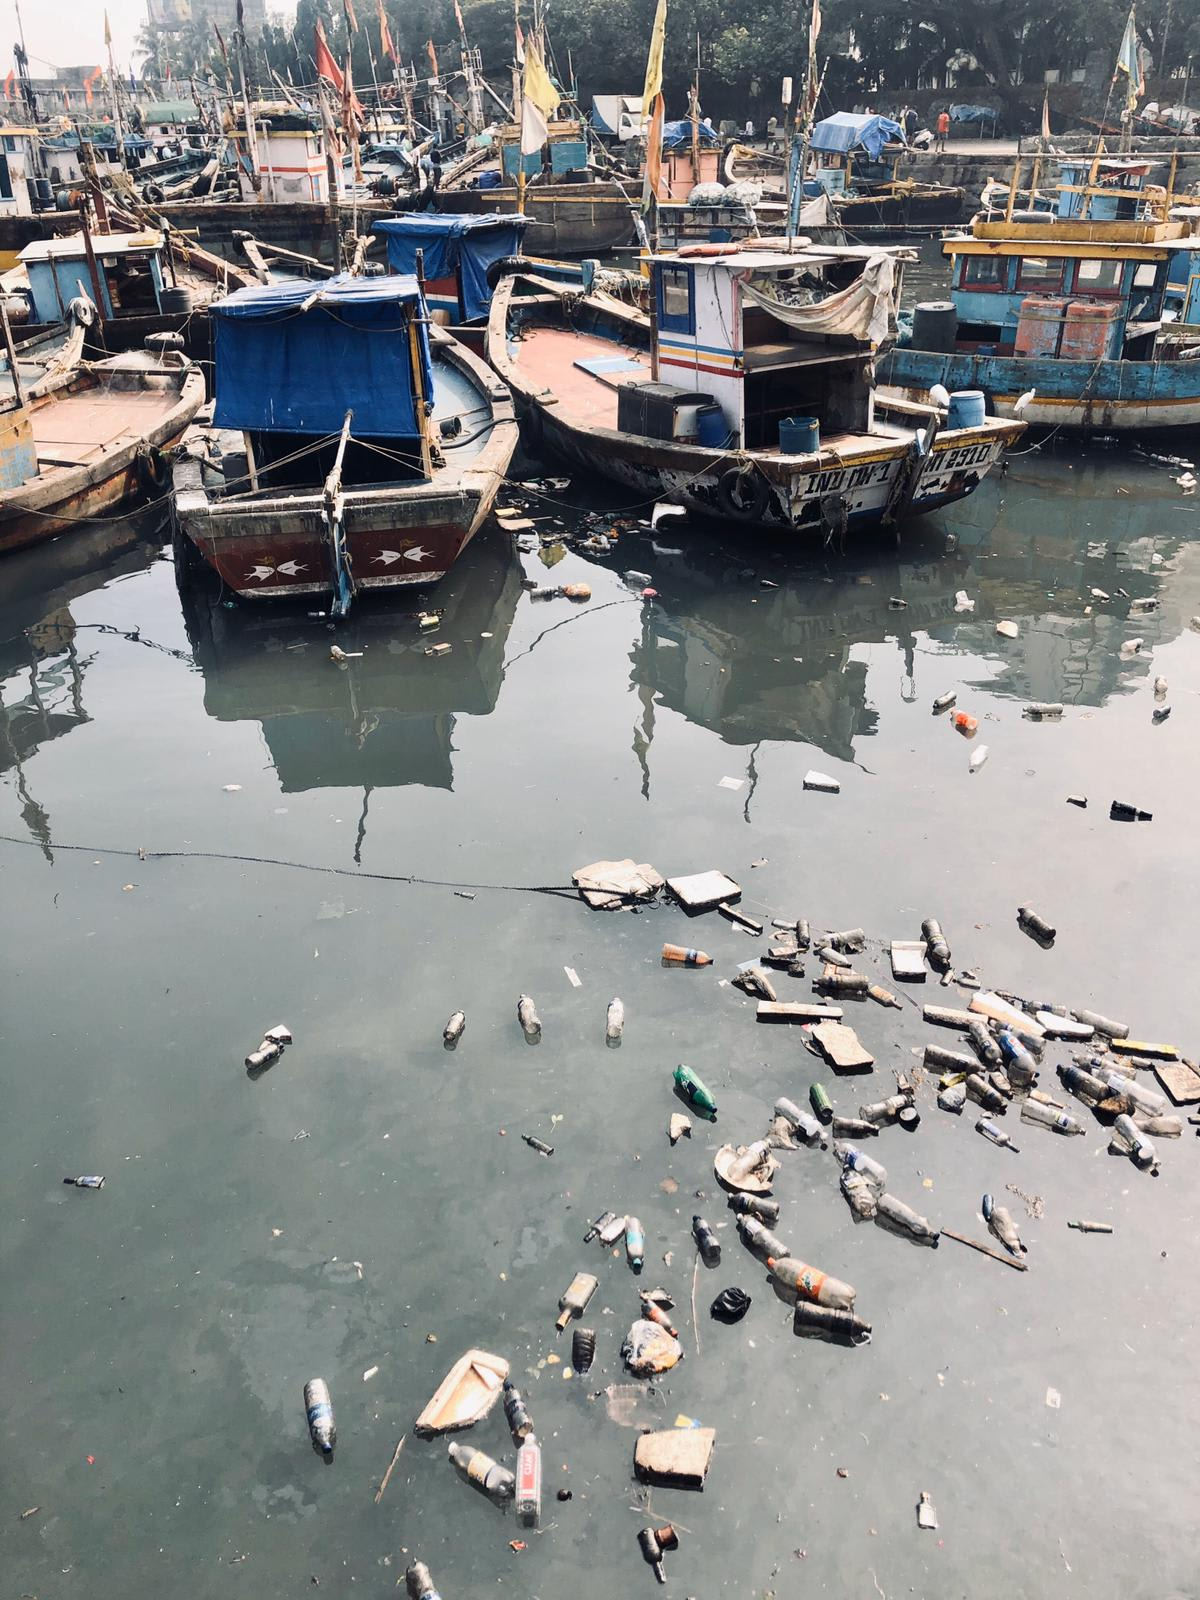 Pollution at the fish market